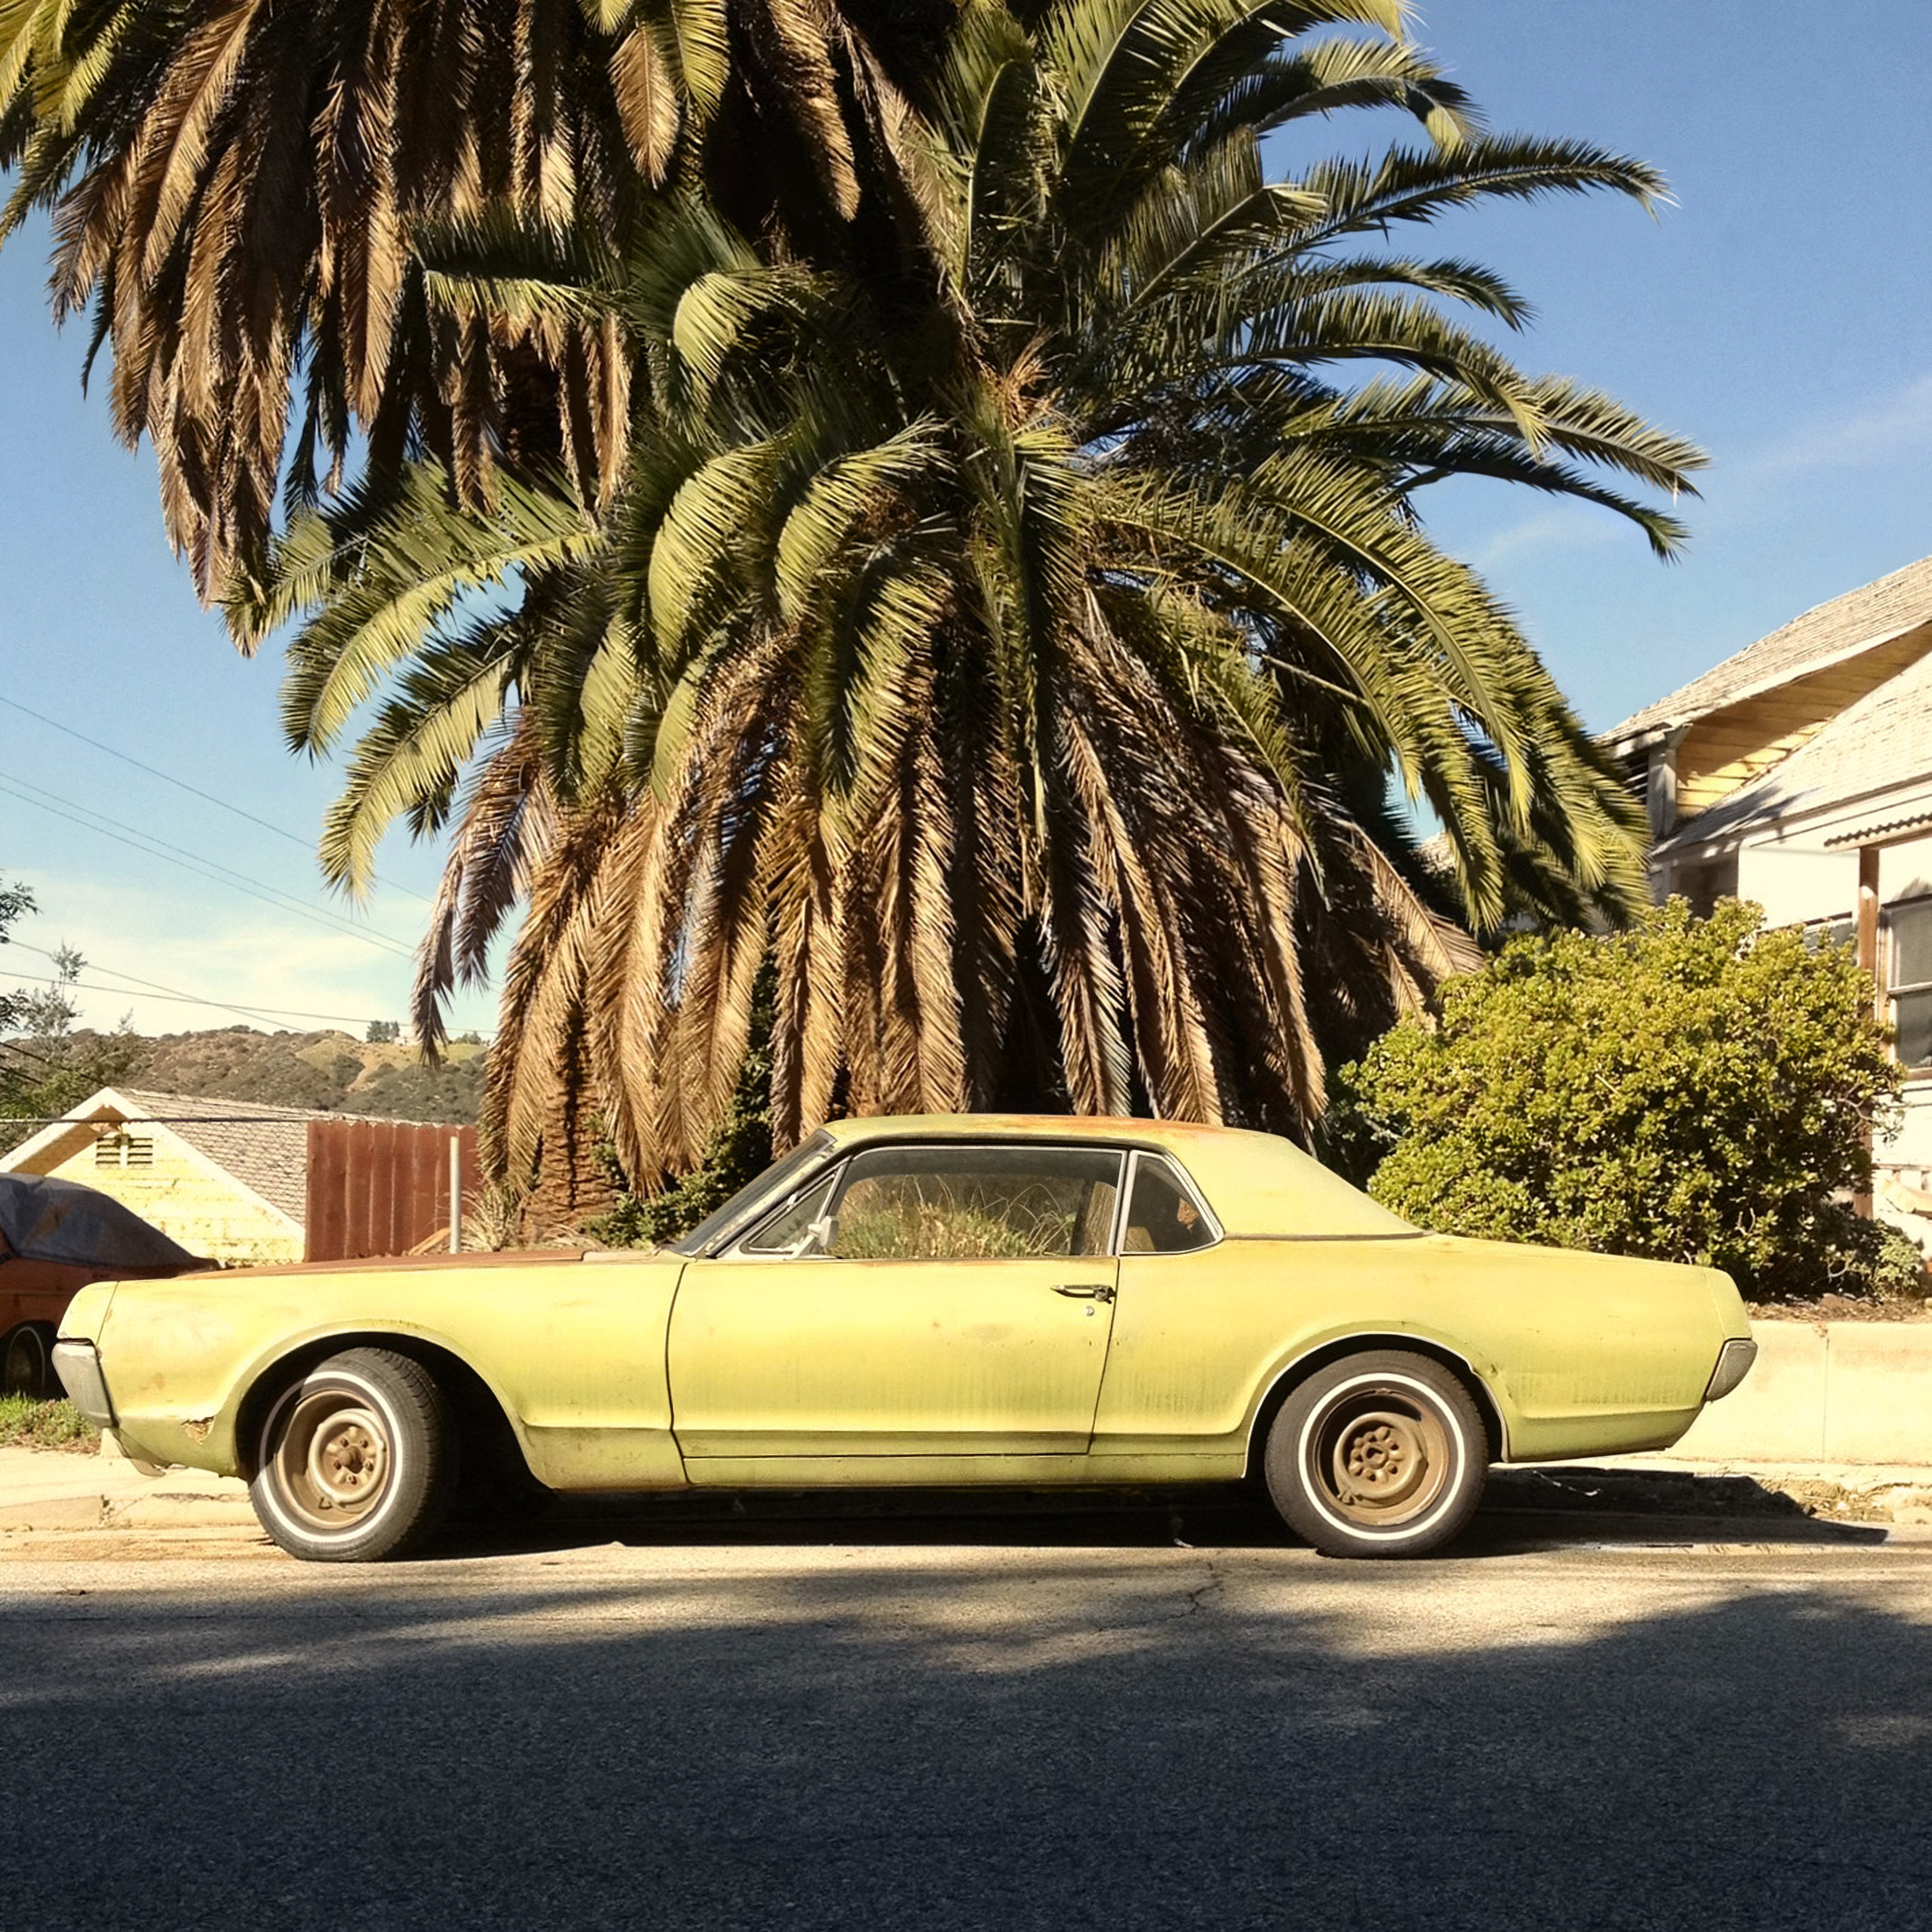 Giving Tree, 2014.                                I've always liked the idea of photography as a hunt for hidden treasure, and L.A.'s horizontal layout makes for a virtually endless and ever-changing treasure map of transient landscapes and urban decay. This photograph underscores a recurring theme in my observations of the city - the latent humor in the everyday —Dan Lopez